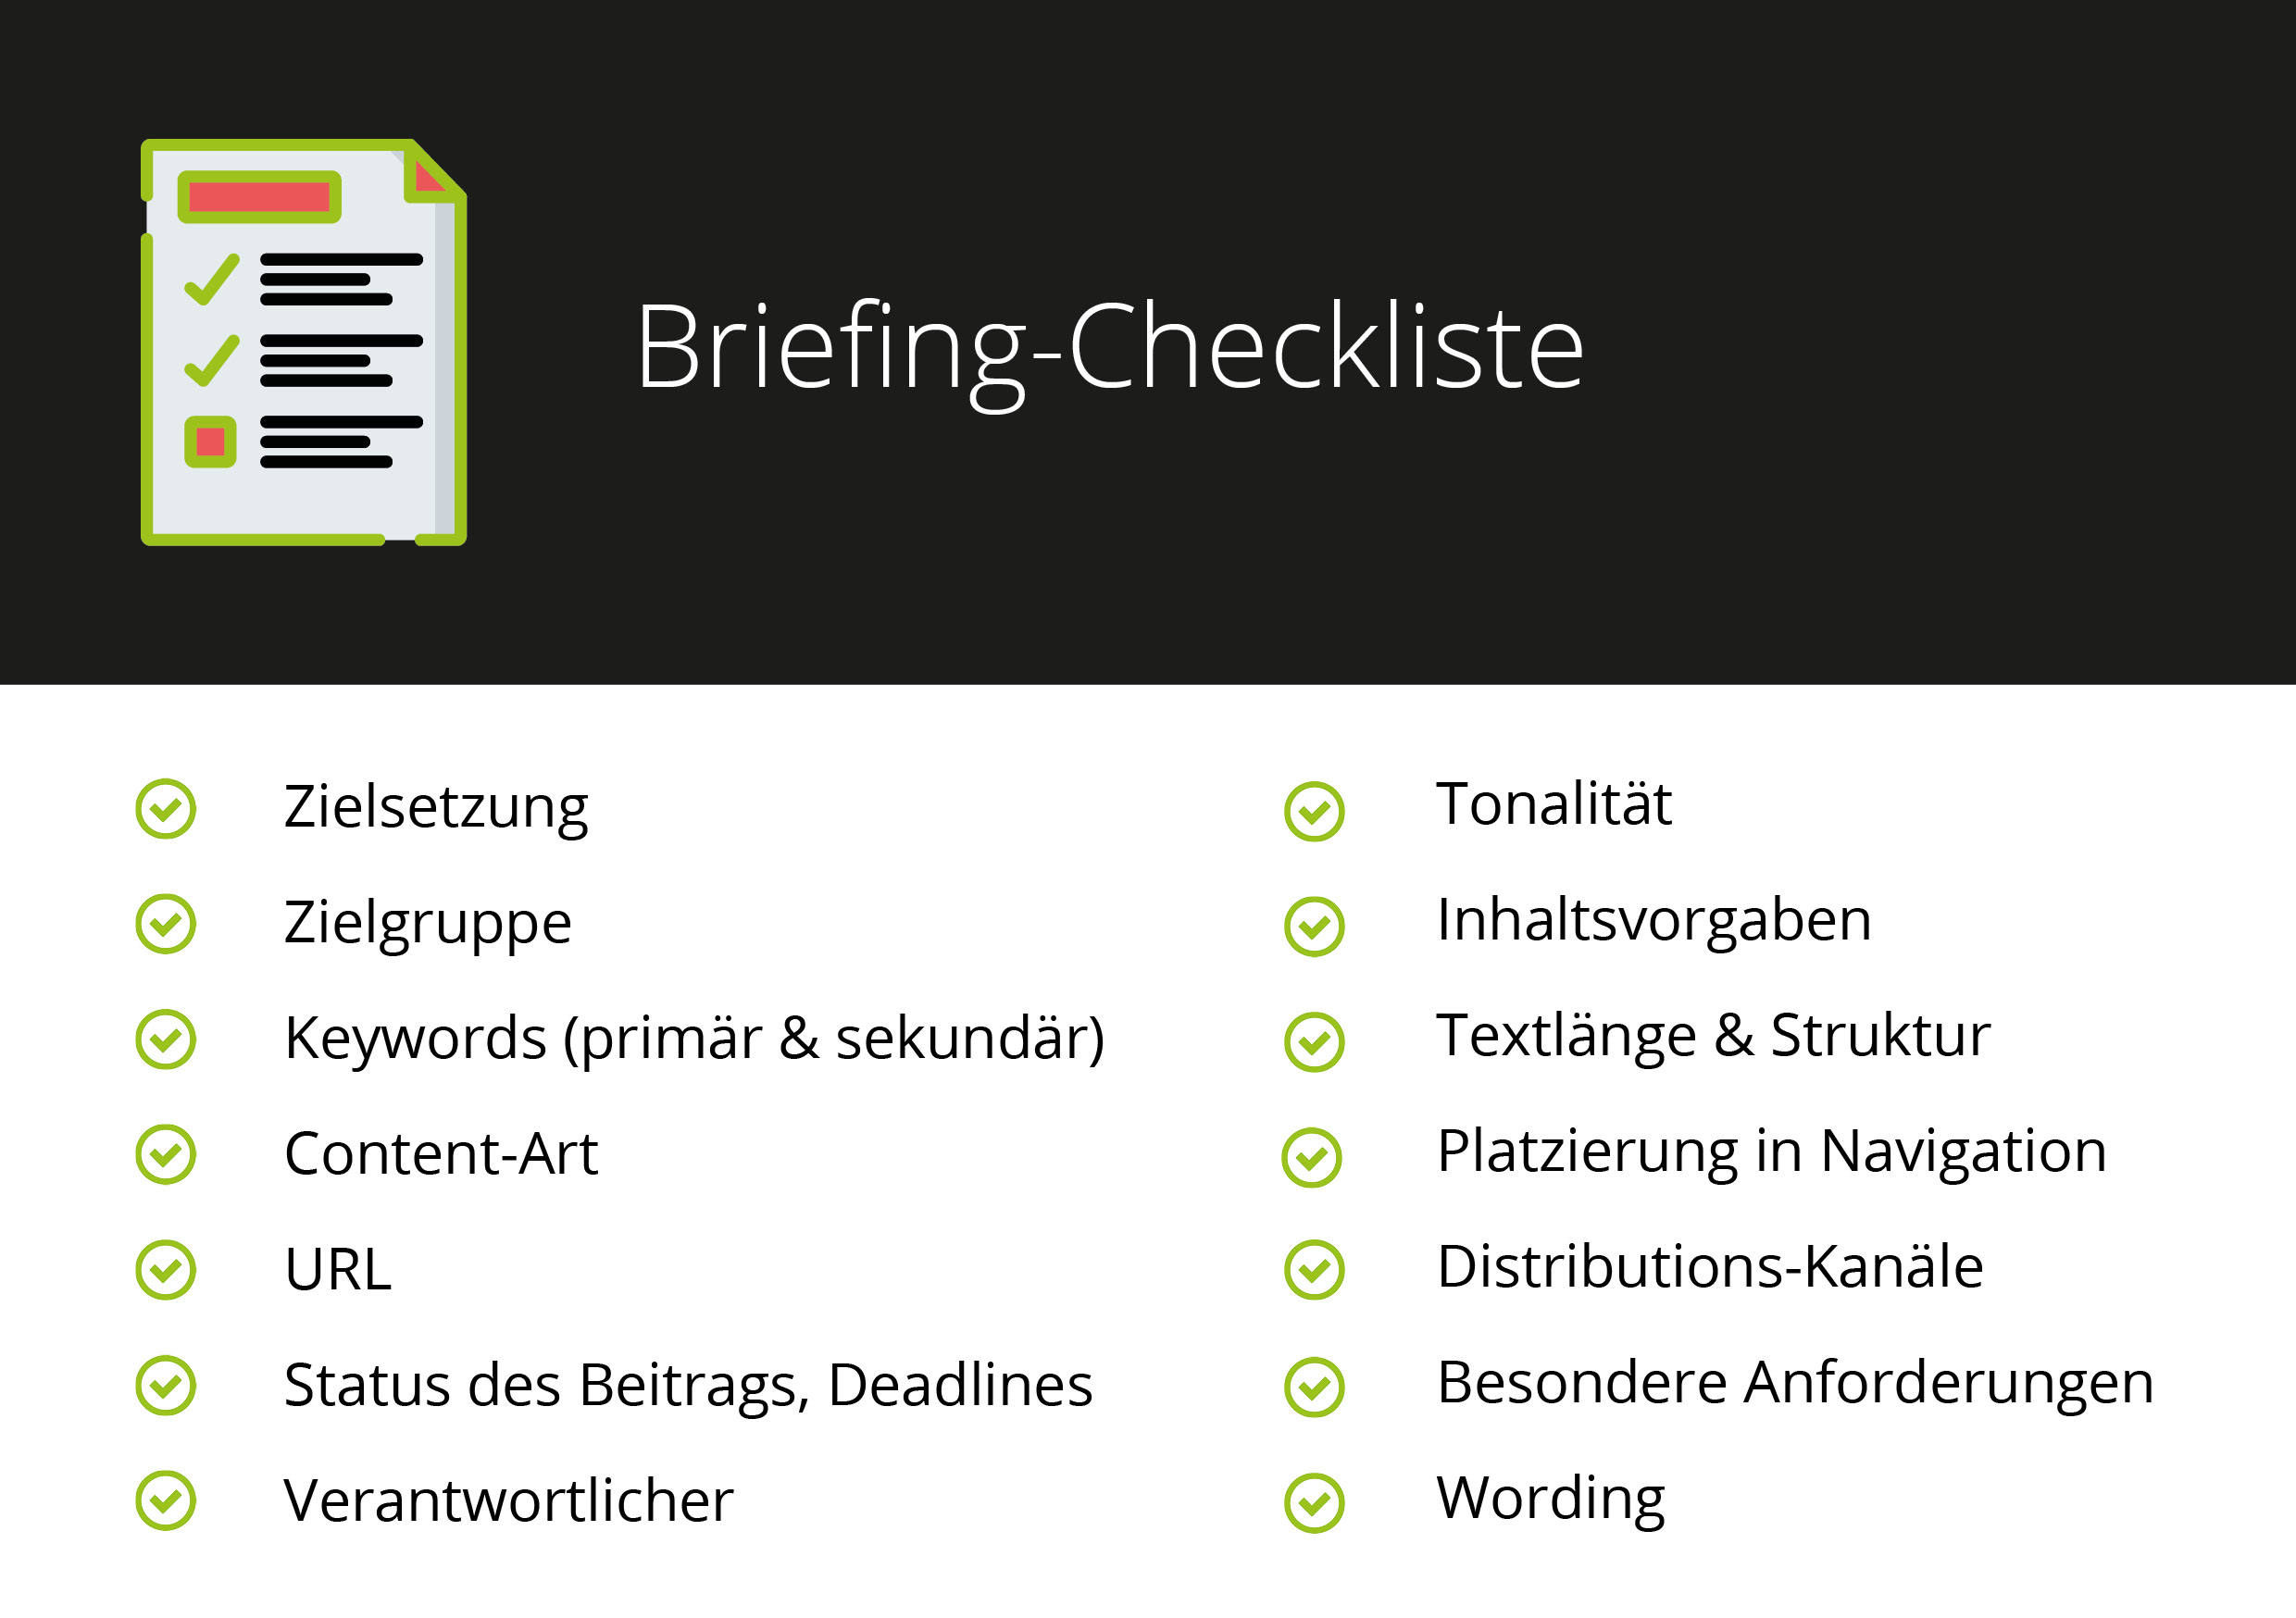 Briefing-Checkliste